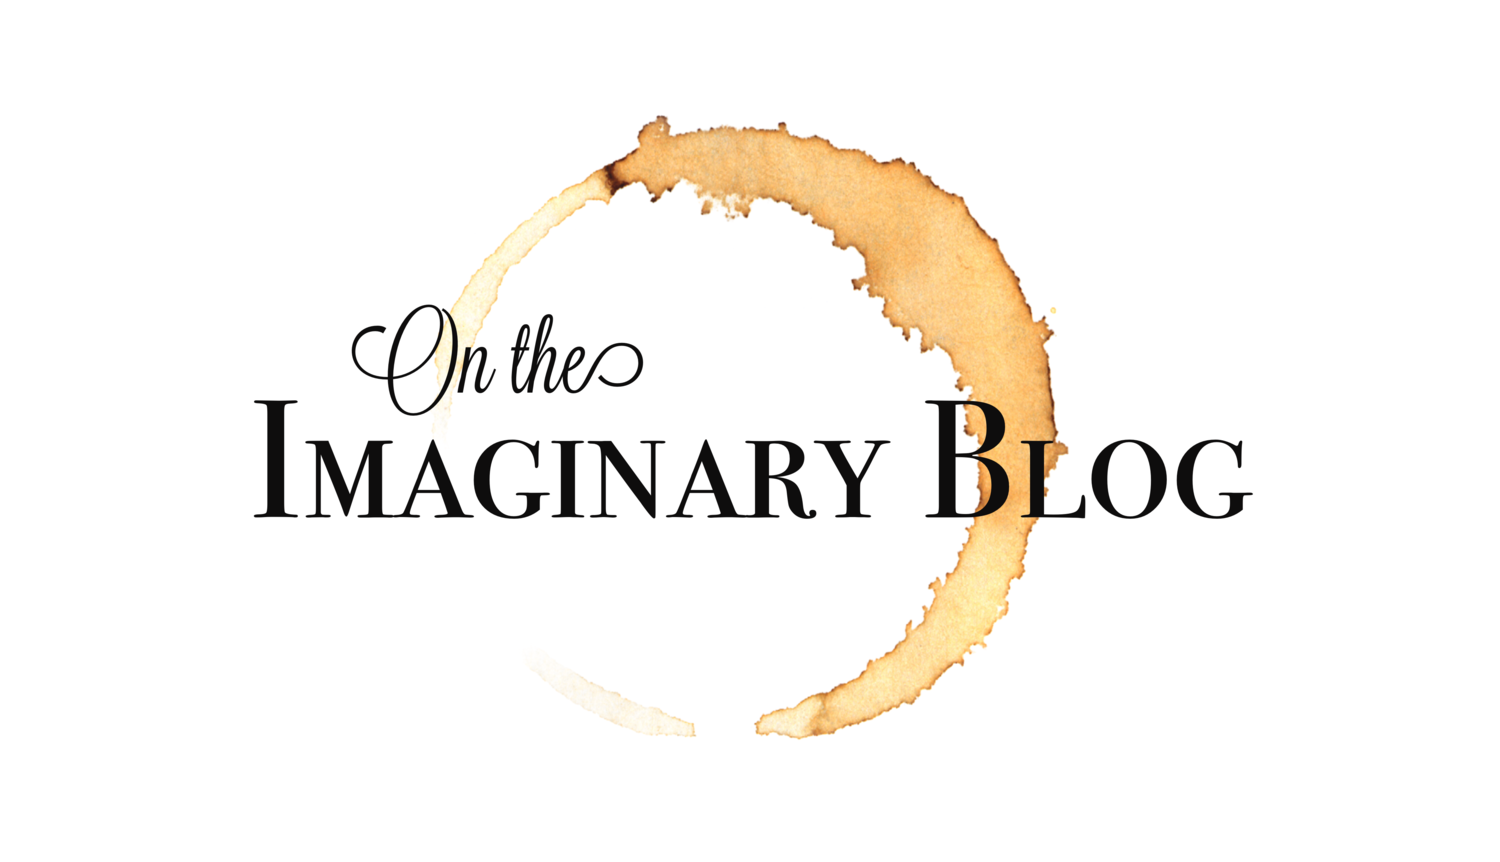 On the Imaginary Blog